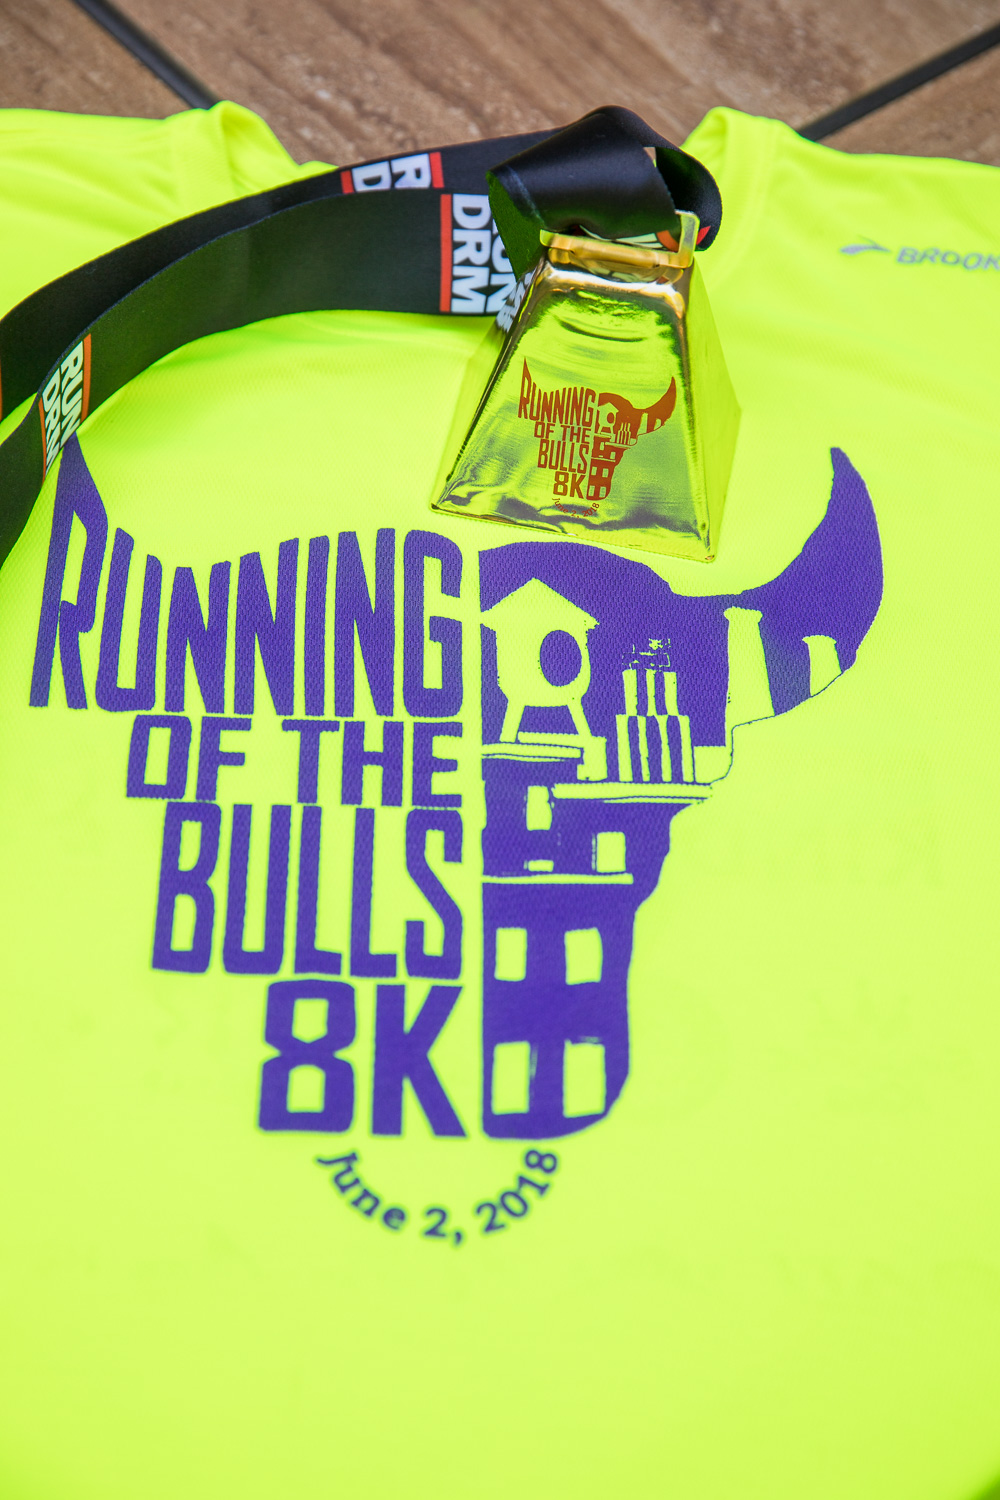 Running of the Bulls 8K 2018 swag - cowbell race medal and tech tshirt